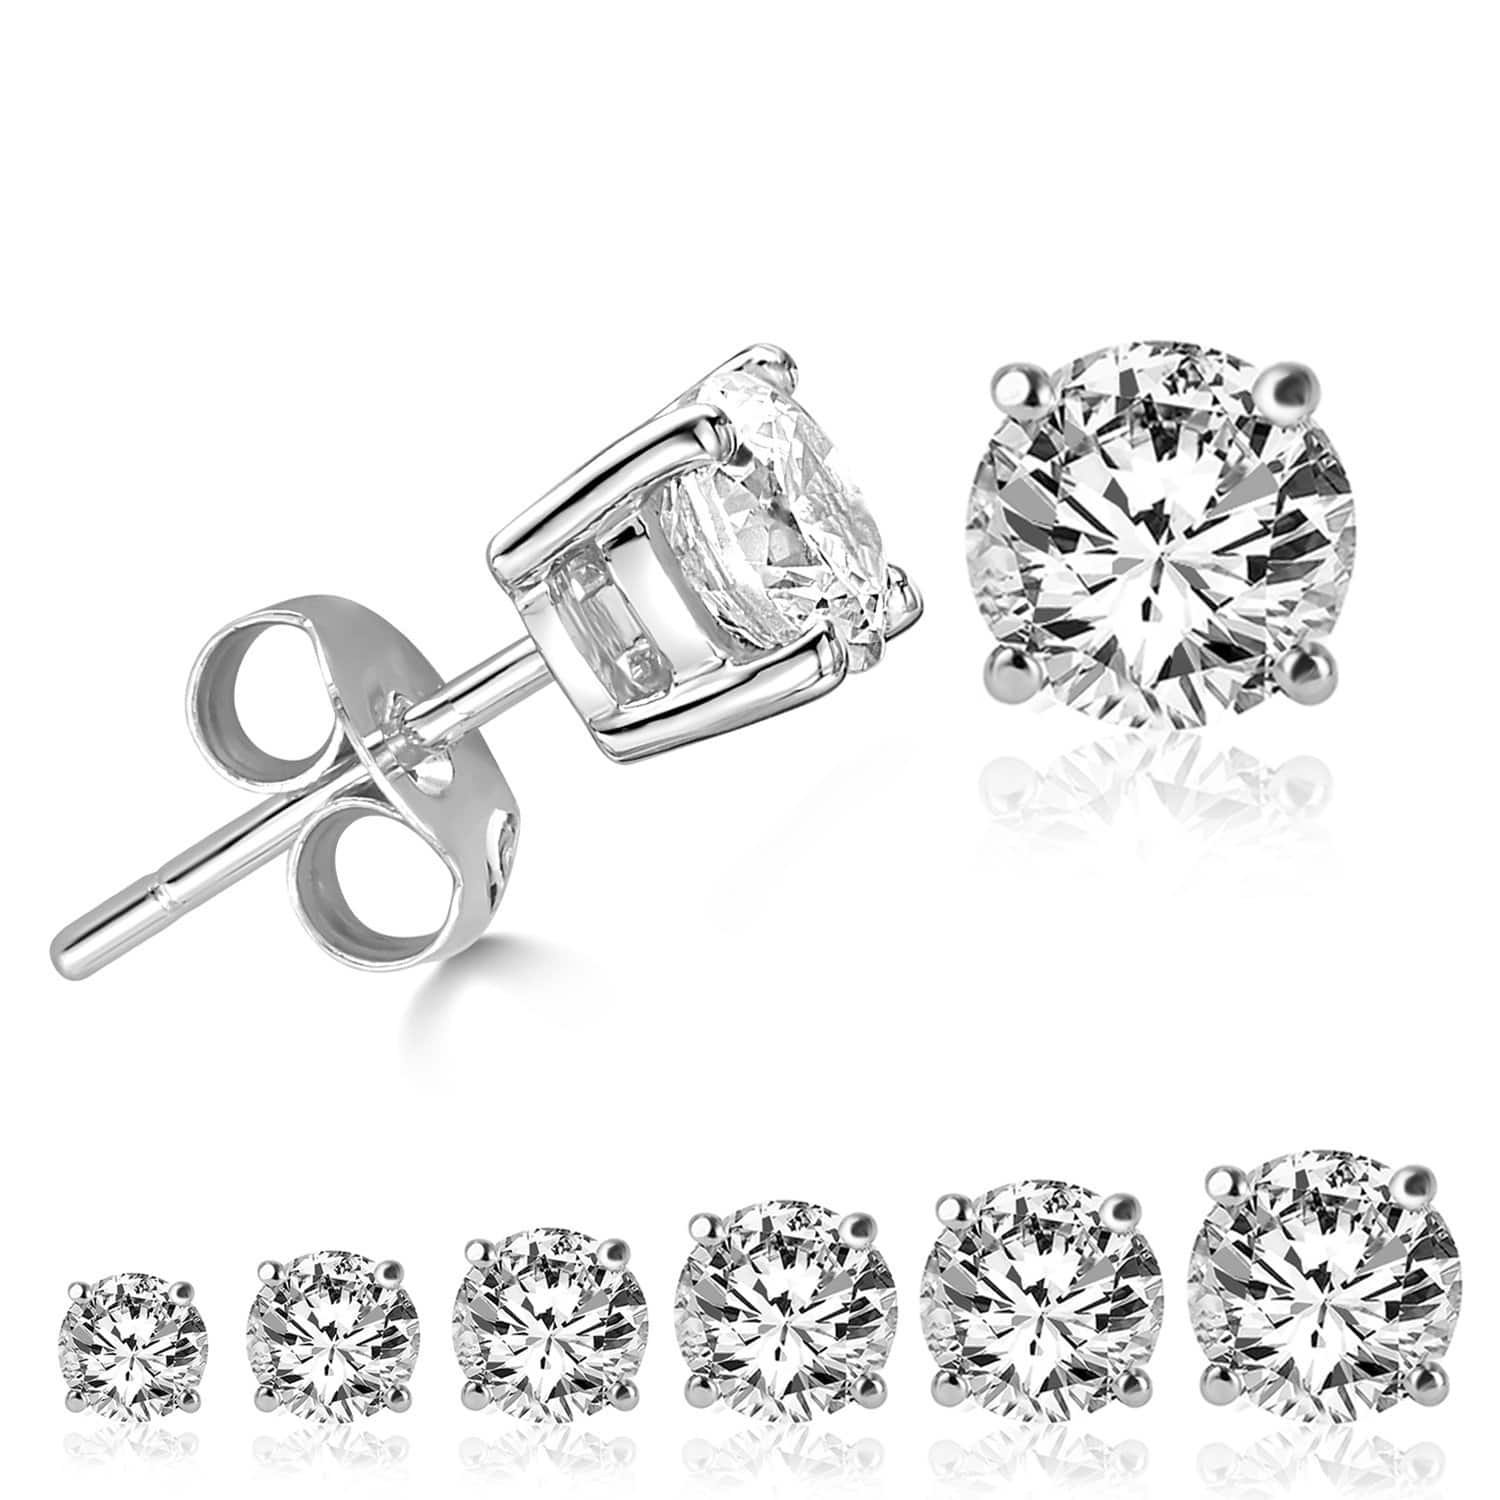 LIEBLICH Women's Round Cut Cubic Zirconia Stainless Steel Earrings Studs Plated White Gold, 3 mm - 8 mm, 6 Piece $8.99